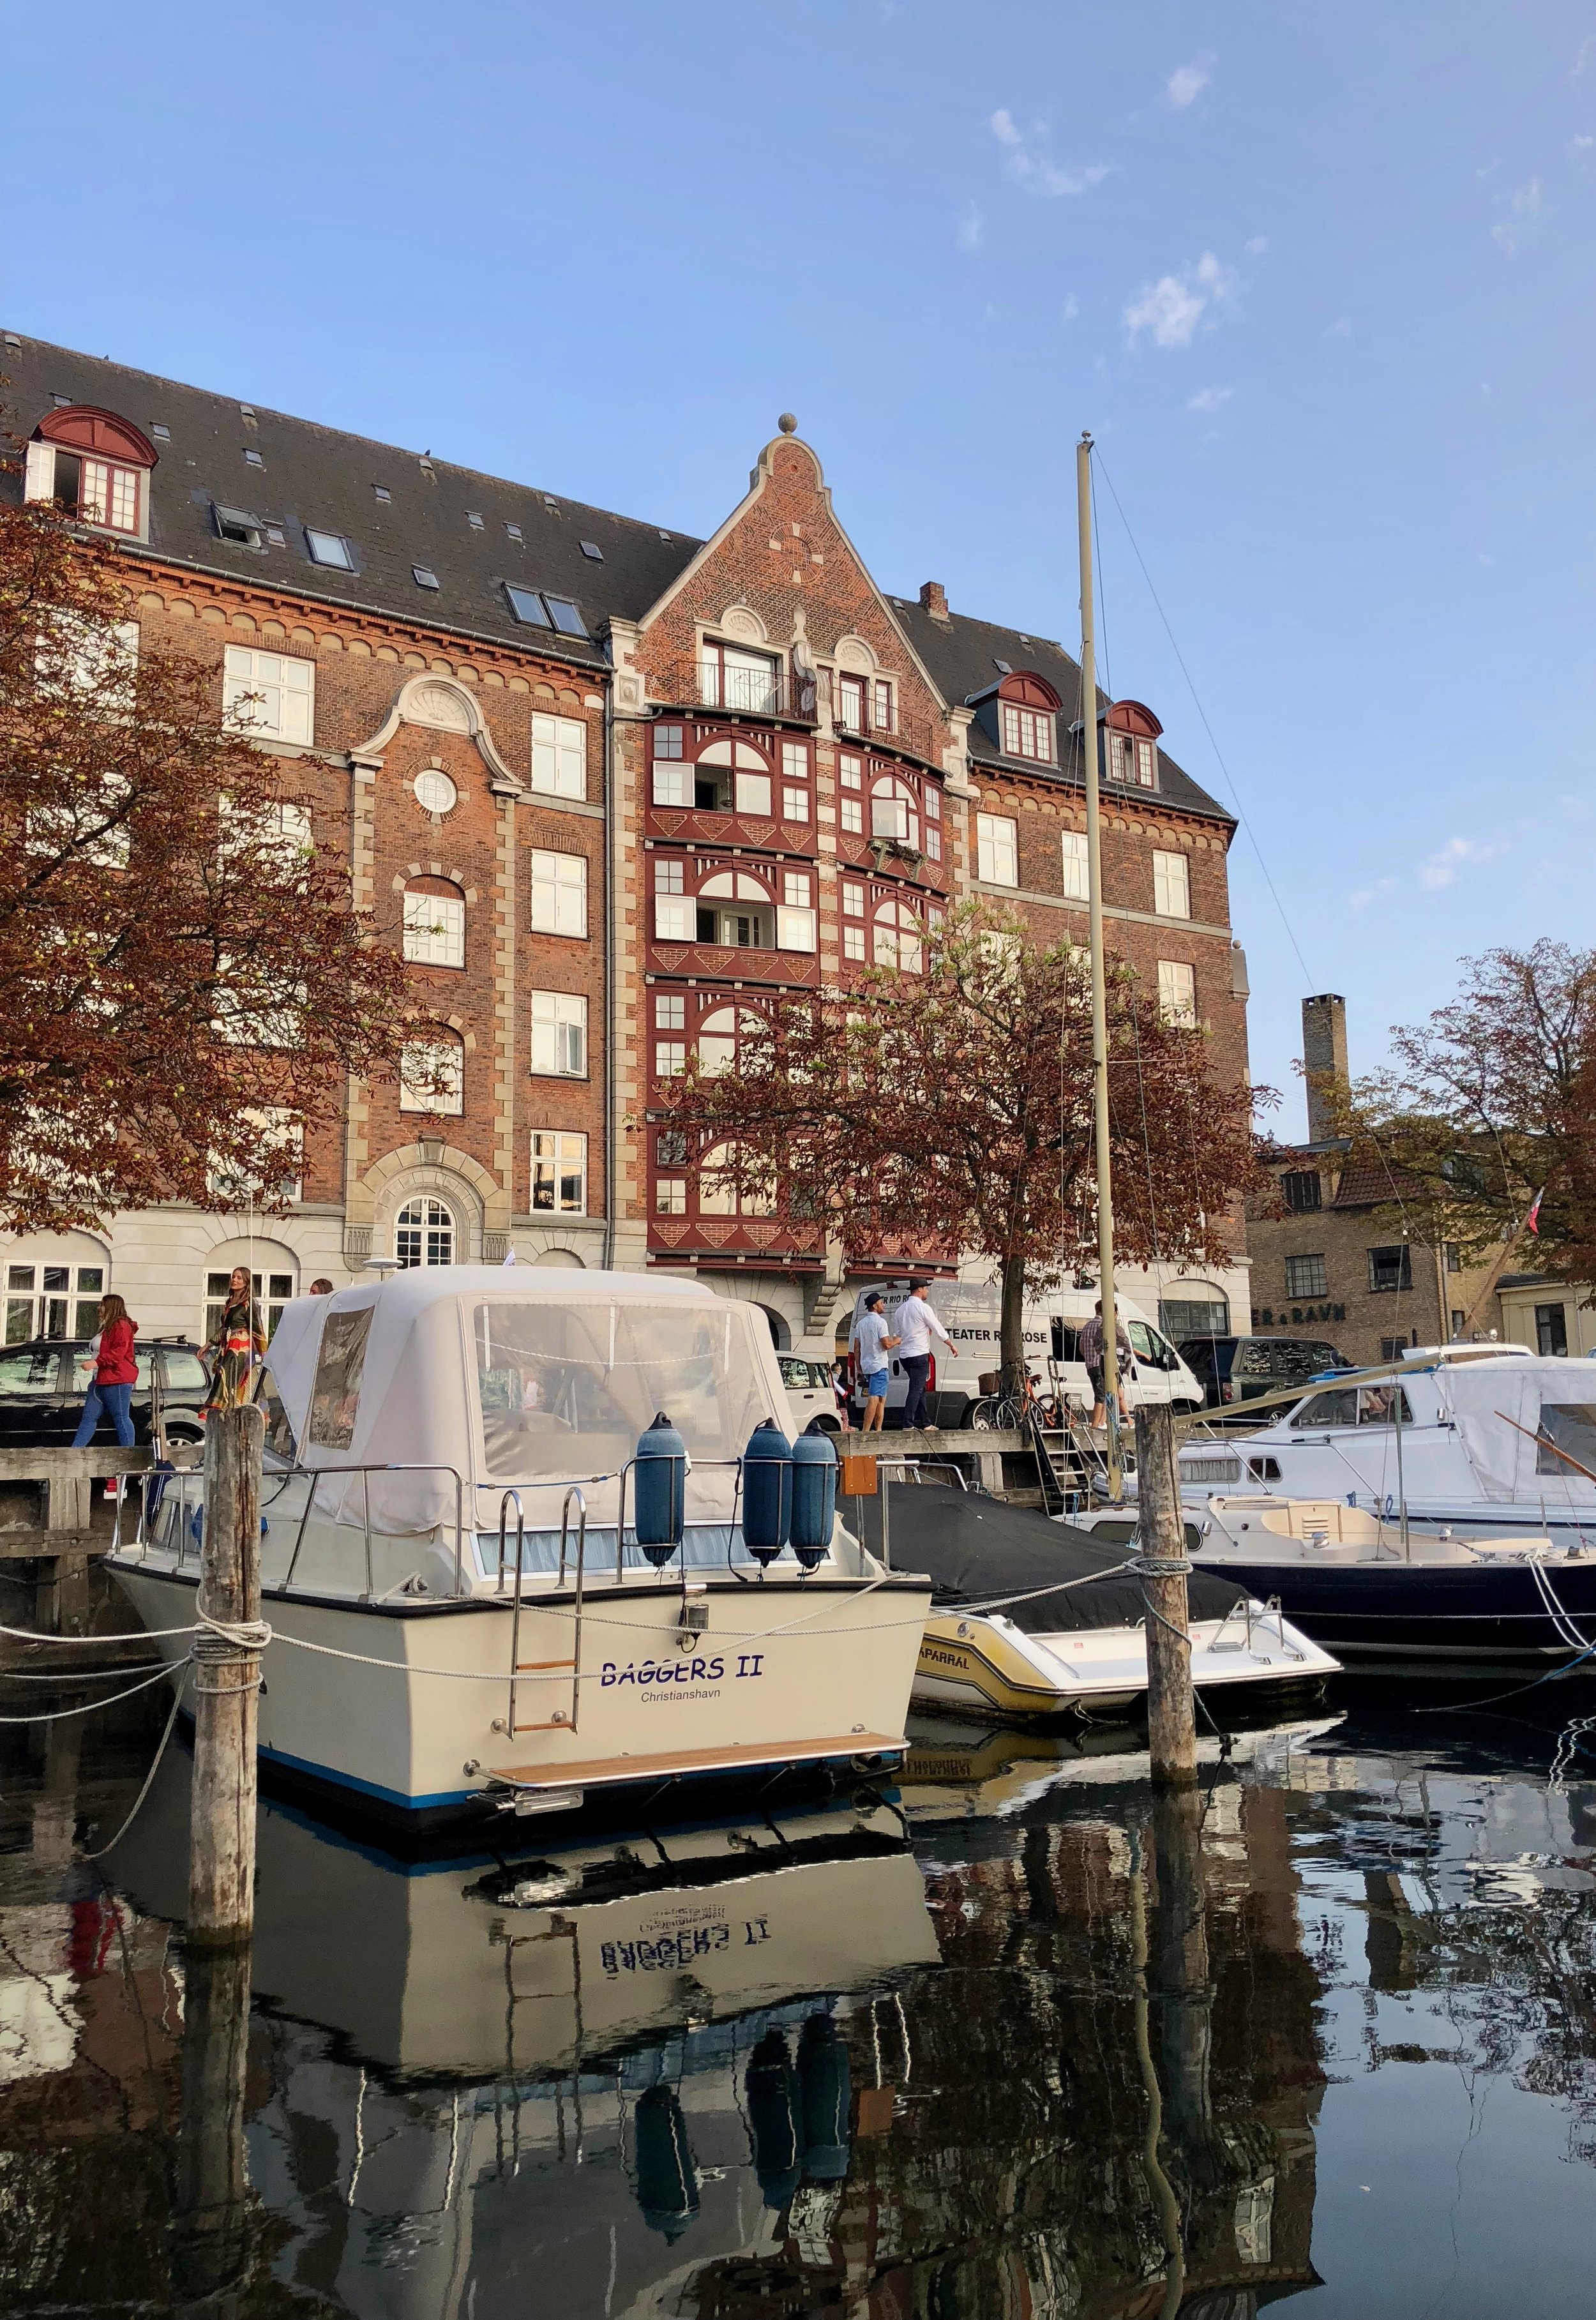 Take a morning stroll along one of the many canals